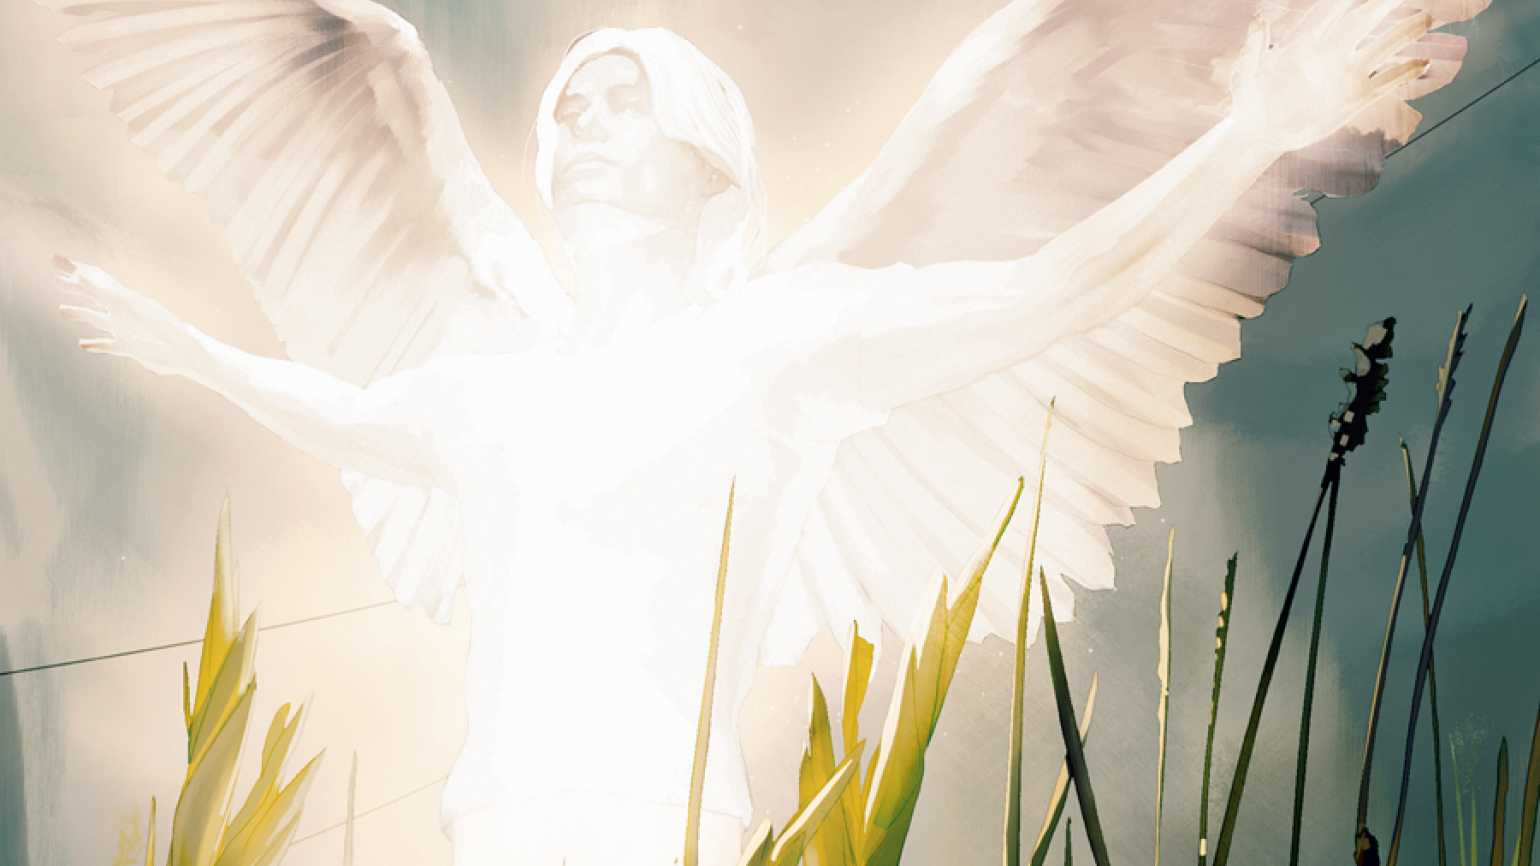 An artist's rendering of a glowing angel hovering over a rural highway